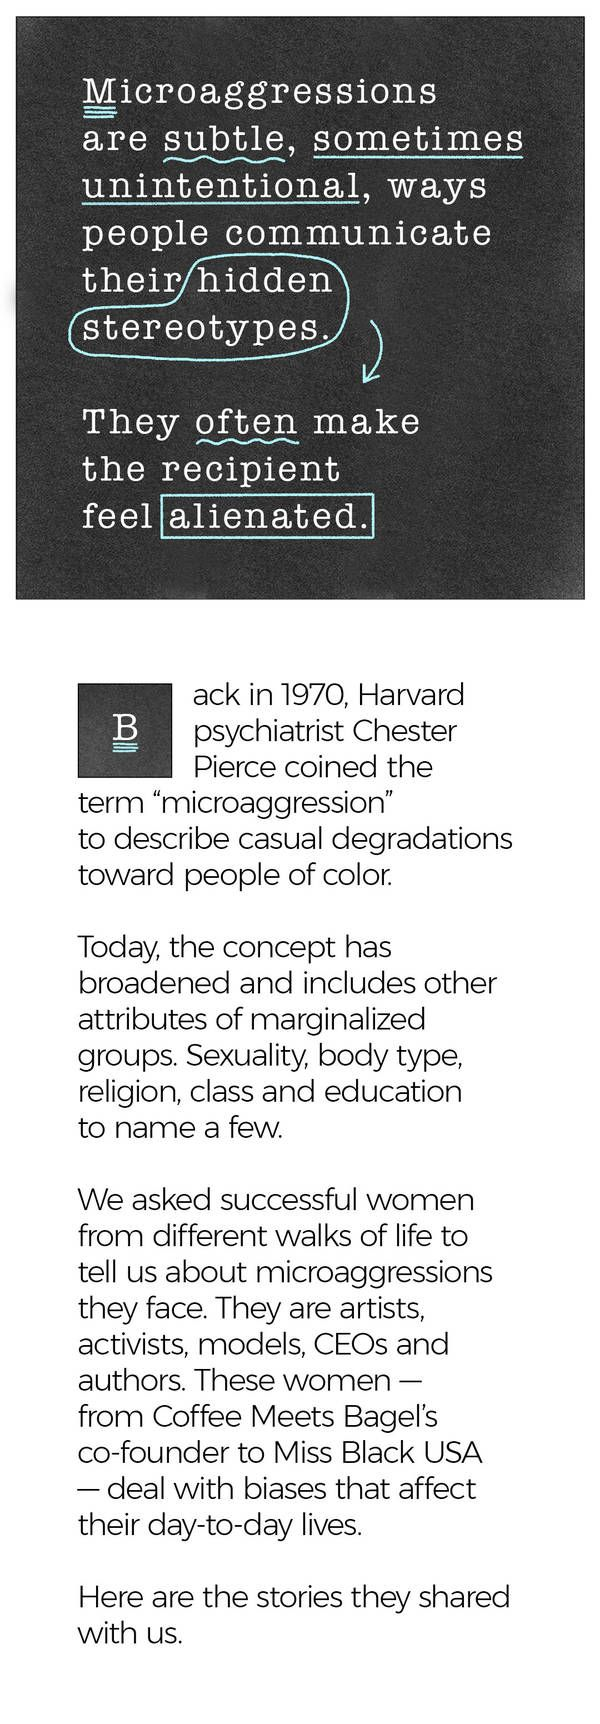 """Microaggressions are subtle, sometimes unintentional, ways people communicate their hidden stereotypes. They often make the recipient feel alienated. Back in 1970, Harvard psychiatrist Chester Pierce coined the term """"microaggression"""" to describe casual degradations toward people of color. Today, the concept has broadened and includes other attributes of marginalized groups. Sexuality, body type, religion, class and education to name a few. We asked successful women from different walks of…"""